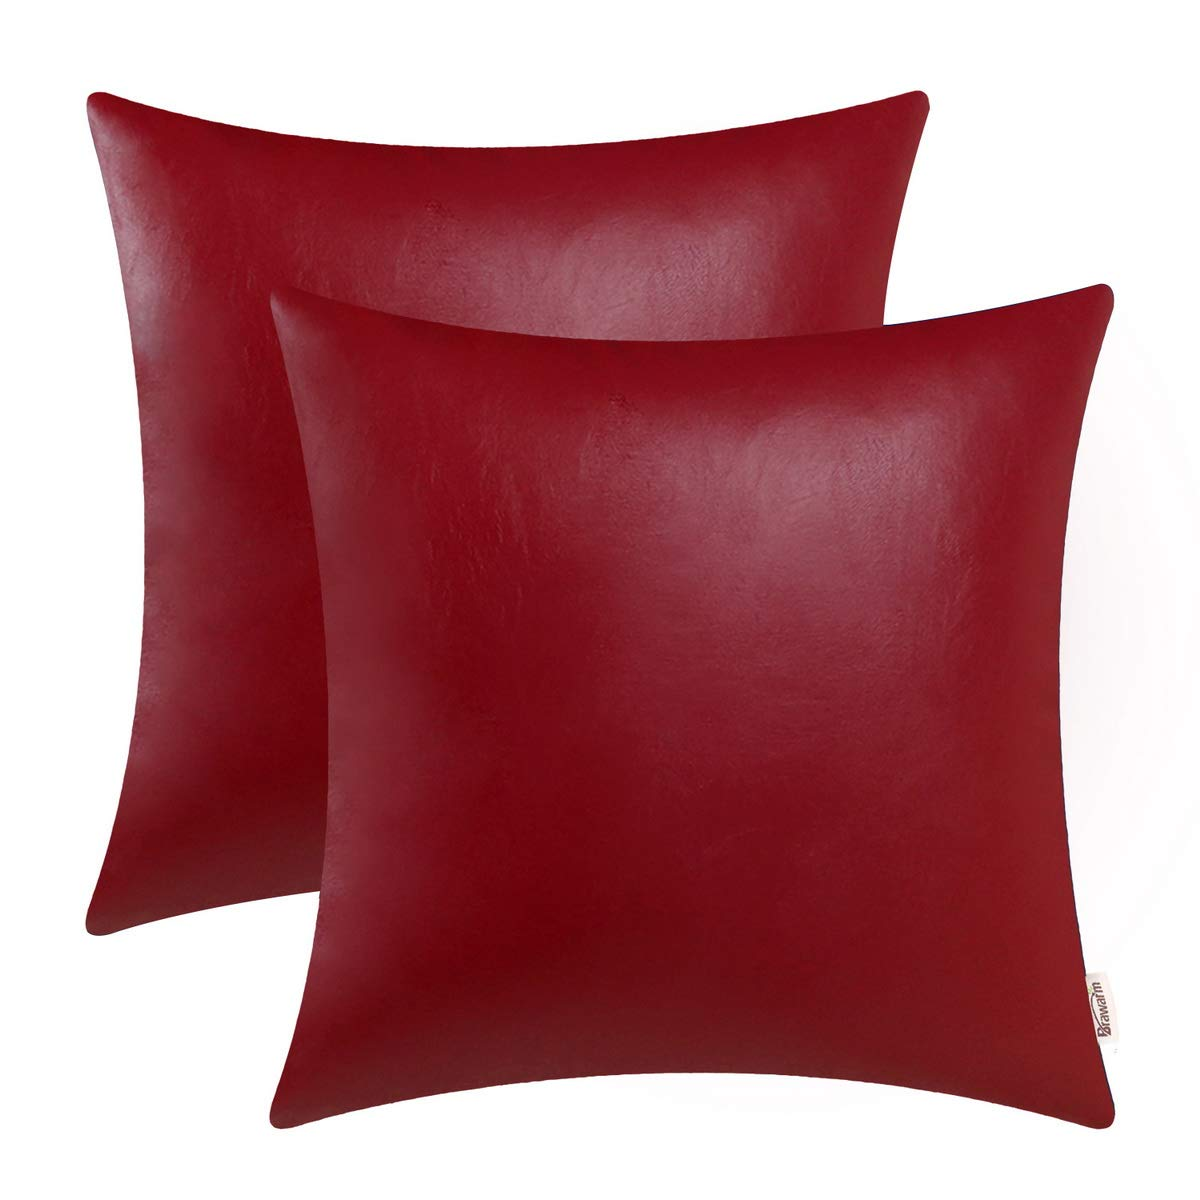 BRAWARM Pack of 2 Cozy Throw Pillow Covers Cases for Couch Sofa Home Decoration Solid Dyed Soft Faux Leather Both Sides 22 X 22 Inches Deep Red